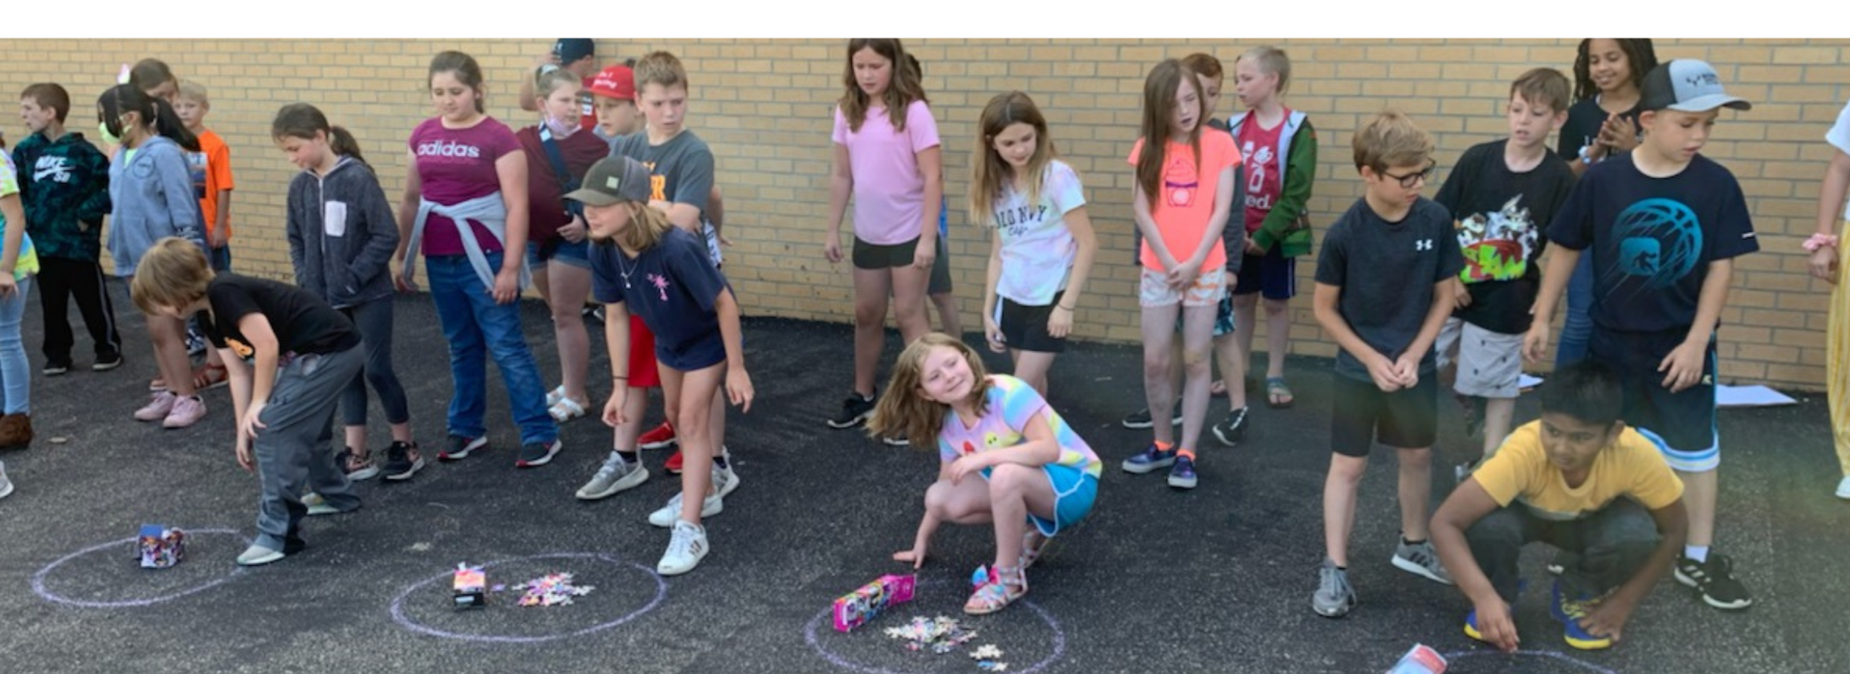 Students participating in a relay race.